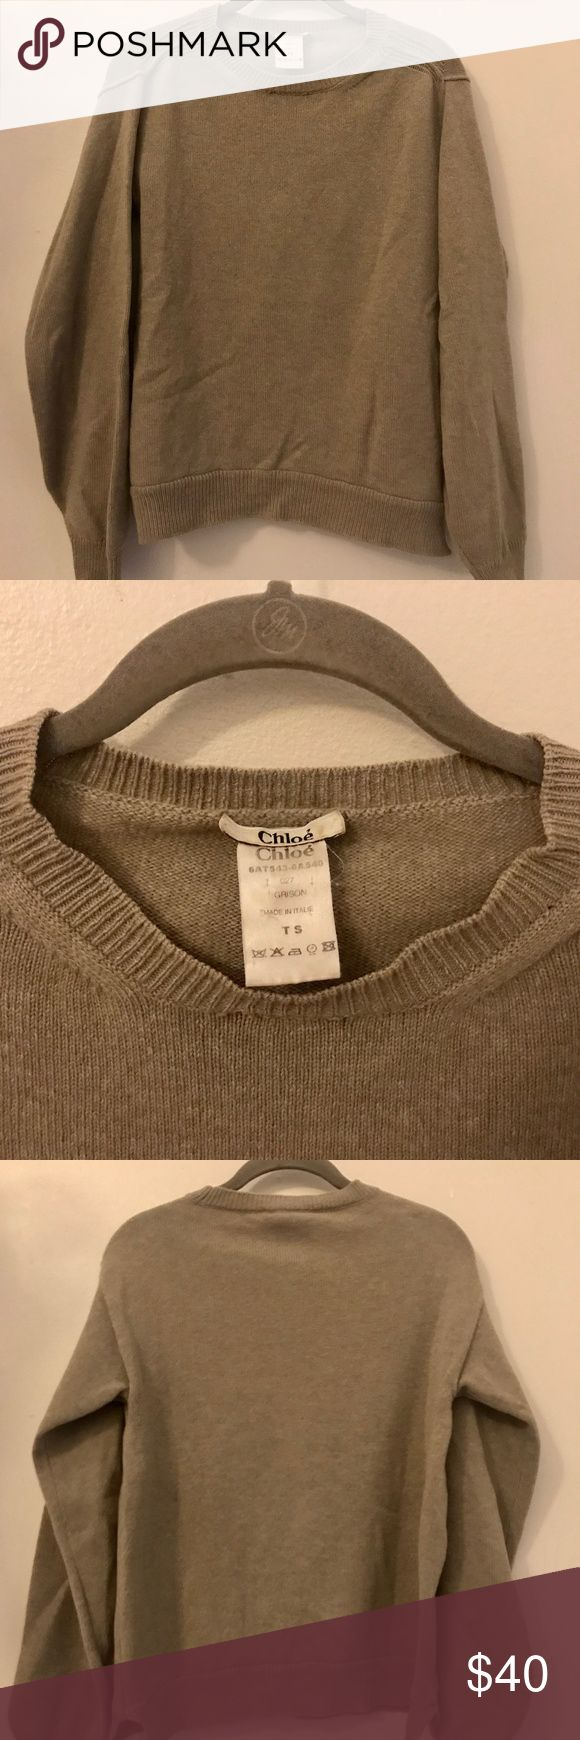 Chloe Brown Wool Sweater Loose fit with long sleeves. There are two spots where the seam needs to be mended (see pics). Otherwise, no flaws. Size S 100% wool Chloe Sweaters Crew & Scoop Necks